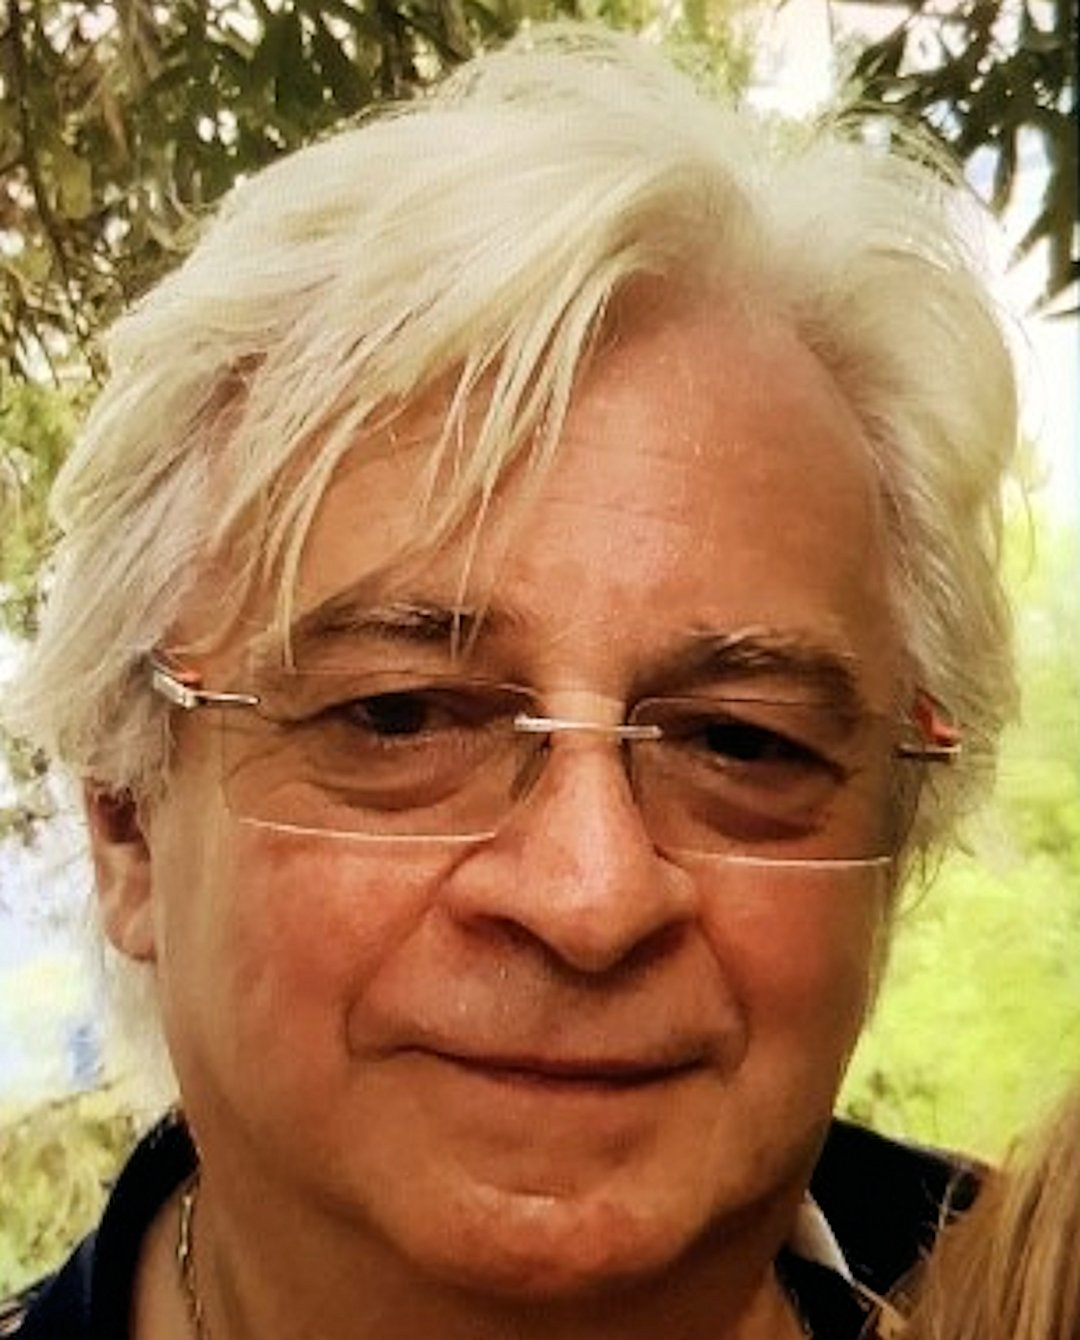 Urgent search for David Cairns missing from Horsham - The Argus